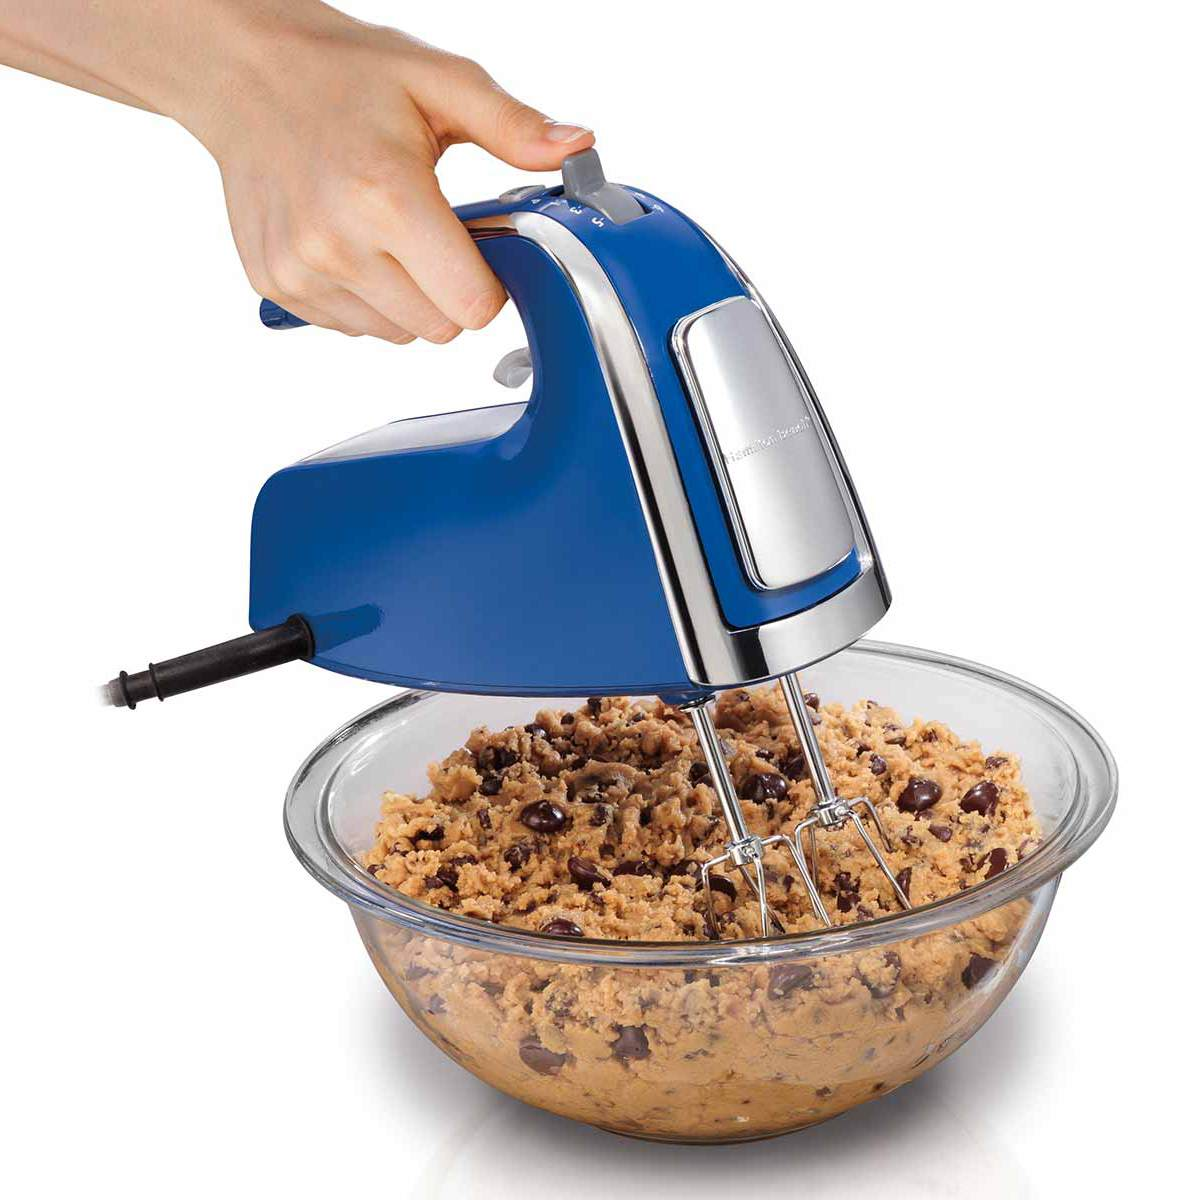 6 Speed Hand Mixer with Pulse and Snap-On Case (62622)